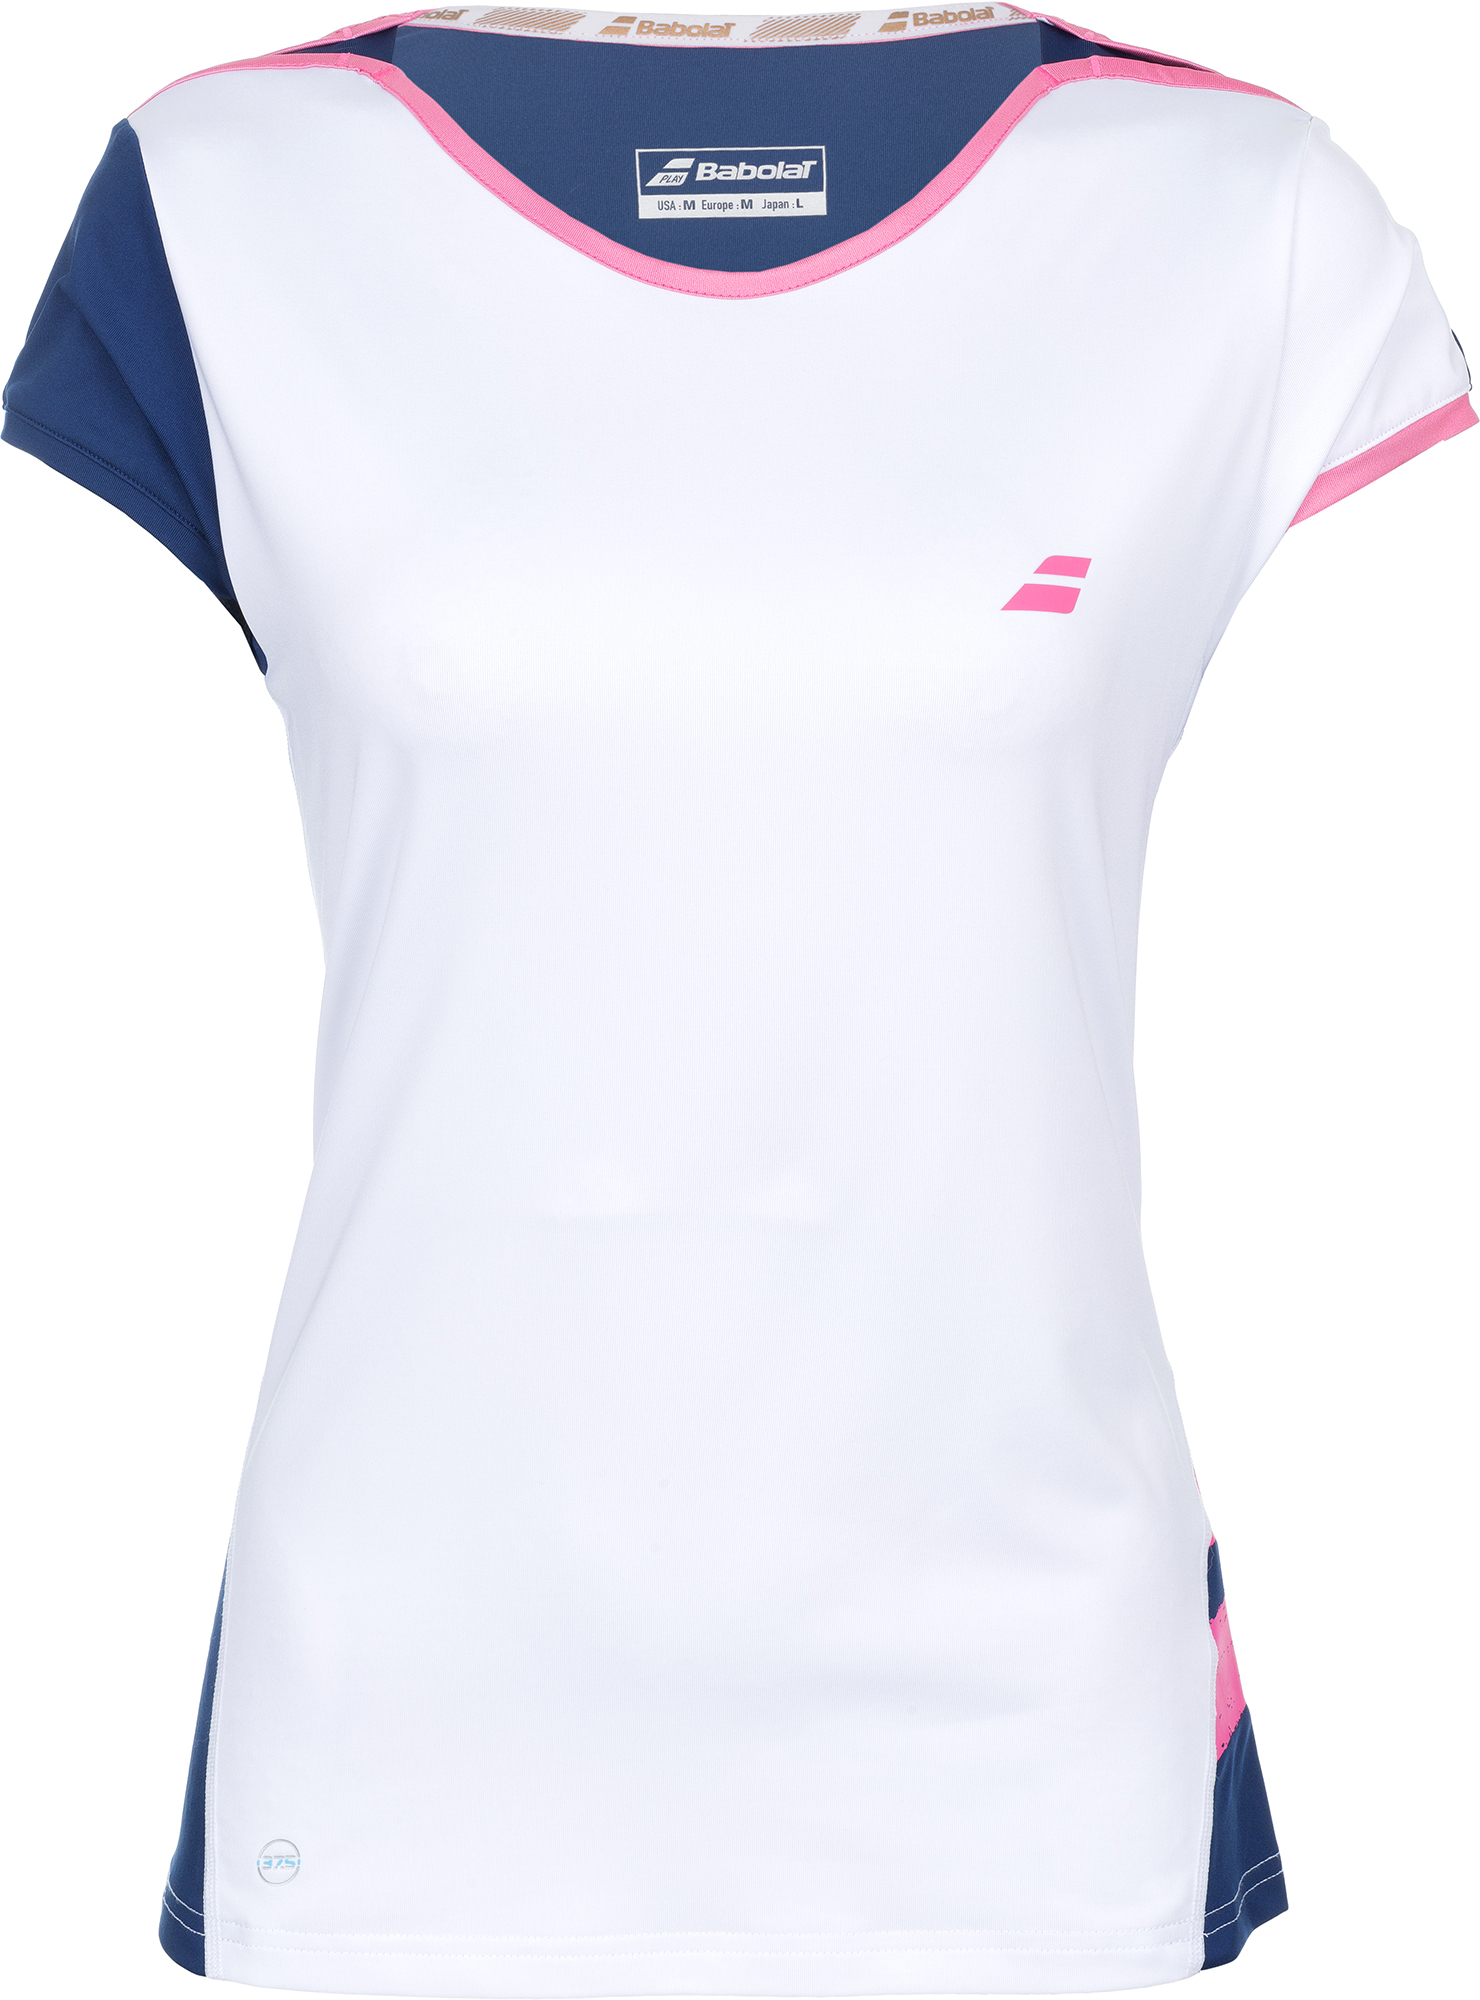 Babolat Футболка женская Babolat Perf Cap Sleeve Top, размер 46-48 buttoned closure back cut and sew cap sleeve top